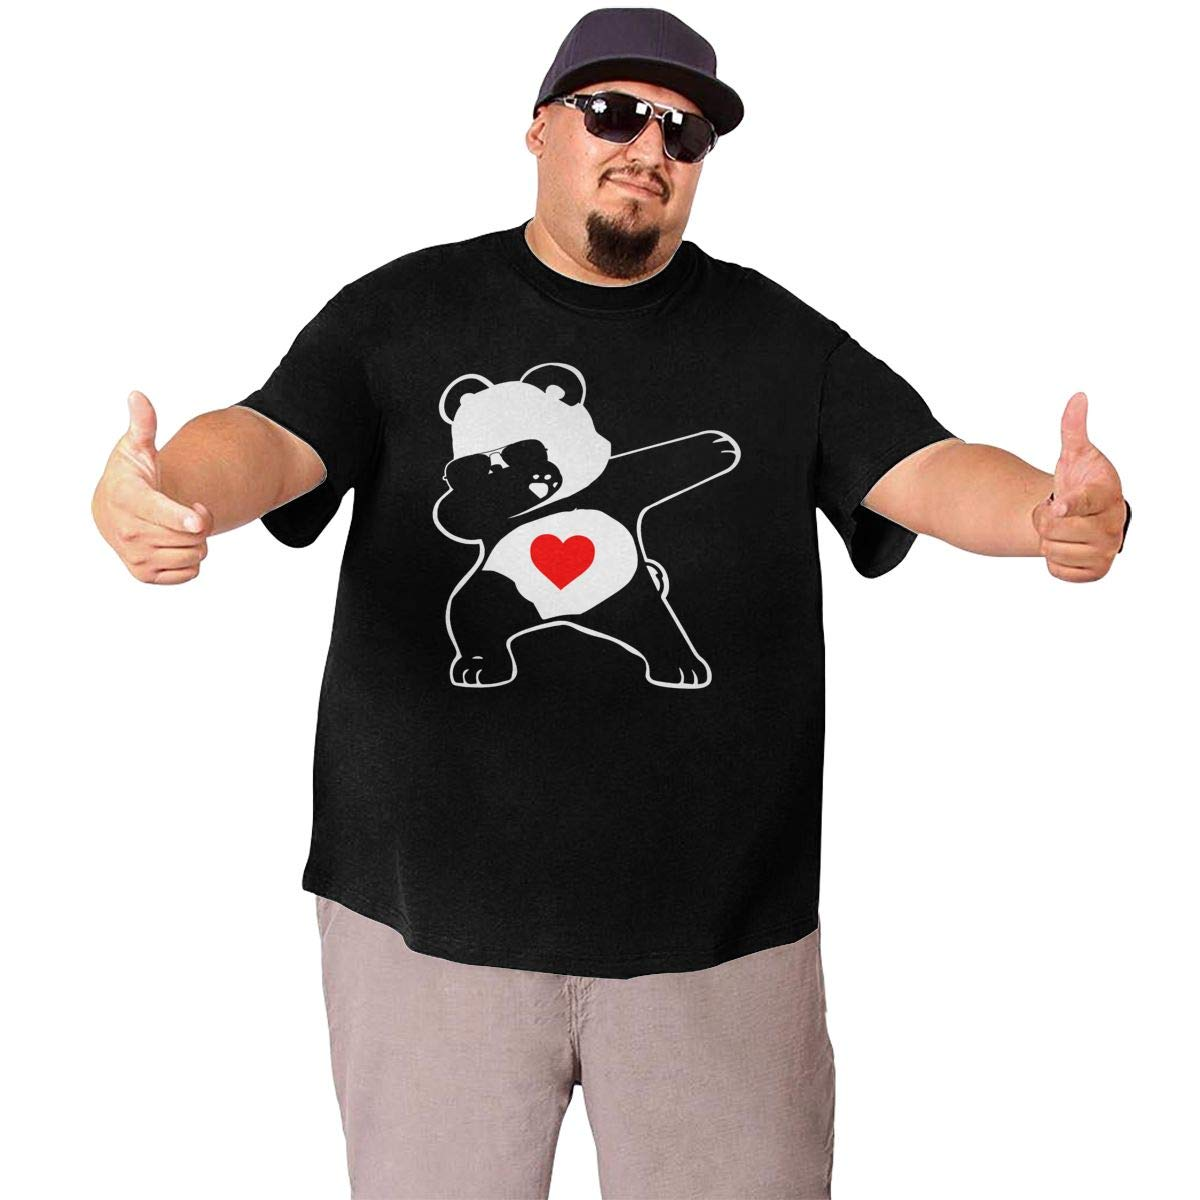 Dabbing Funny Panda Mens Oversized Classic Larger Waist T-Shirt for Size XL to 6XL